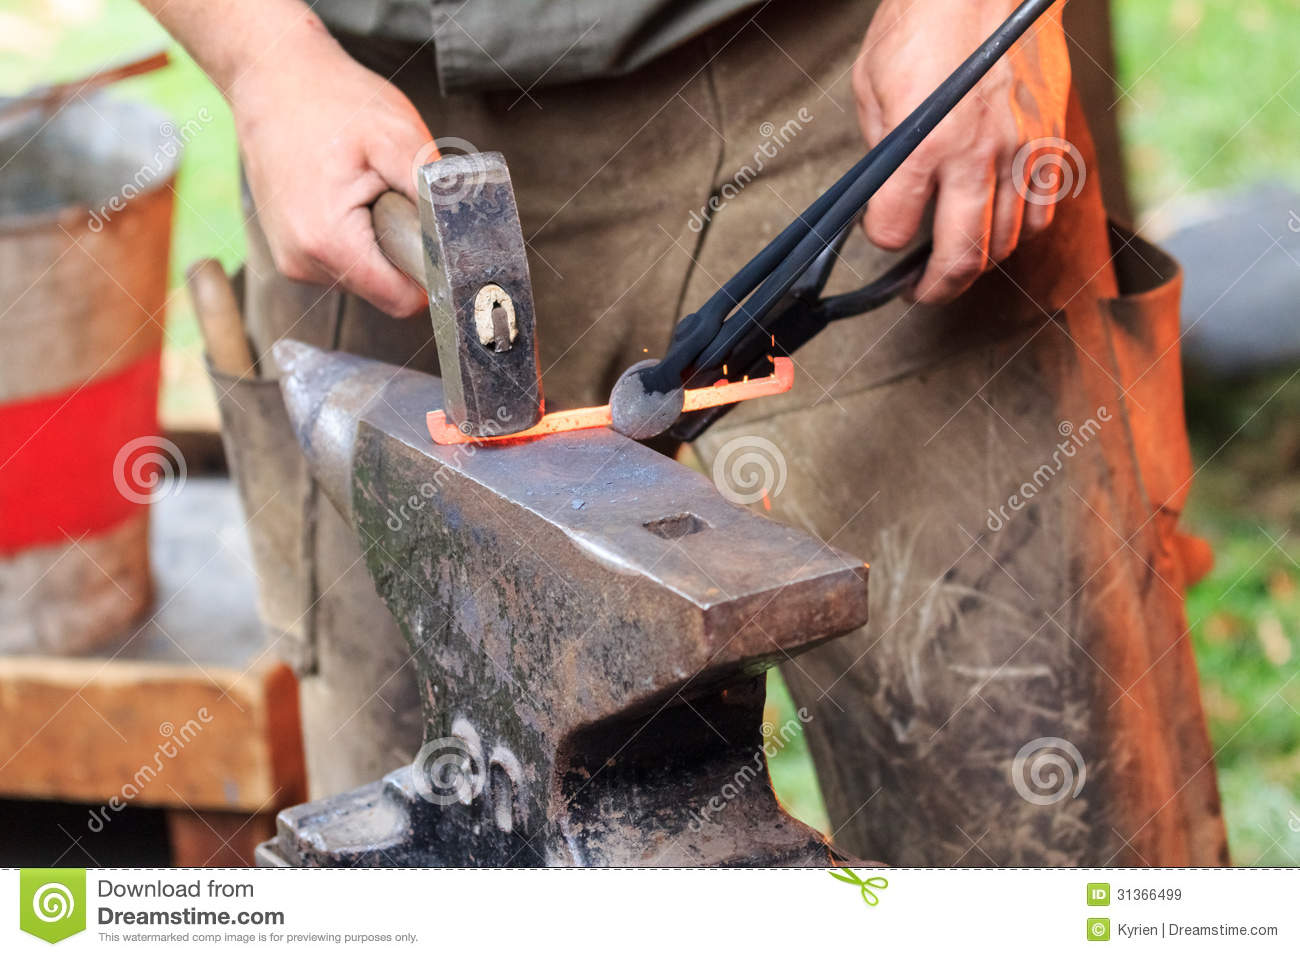 Royalty Free Stock Images: Forging a horse shoe